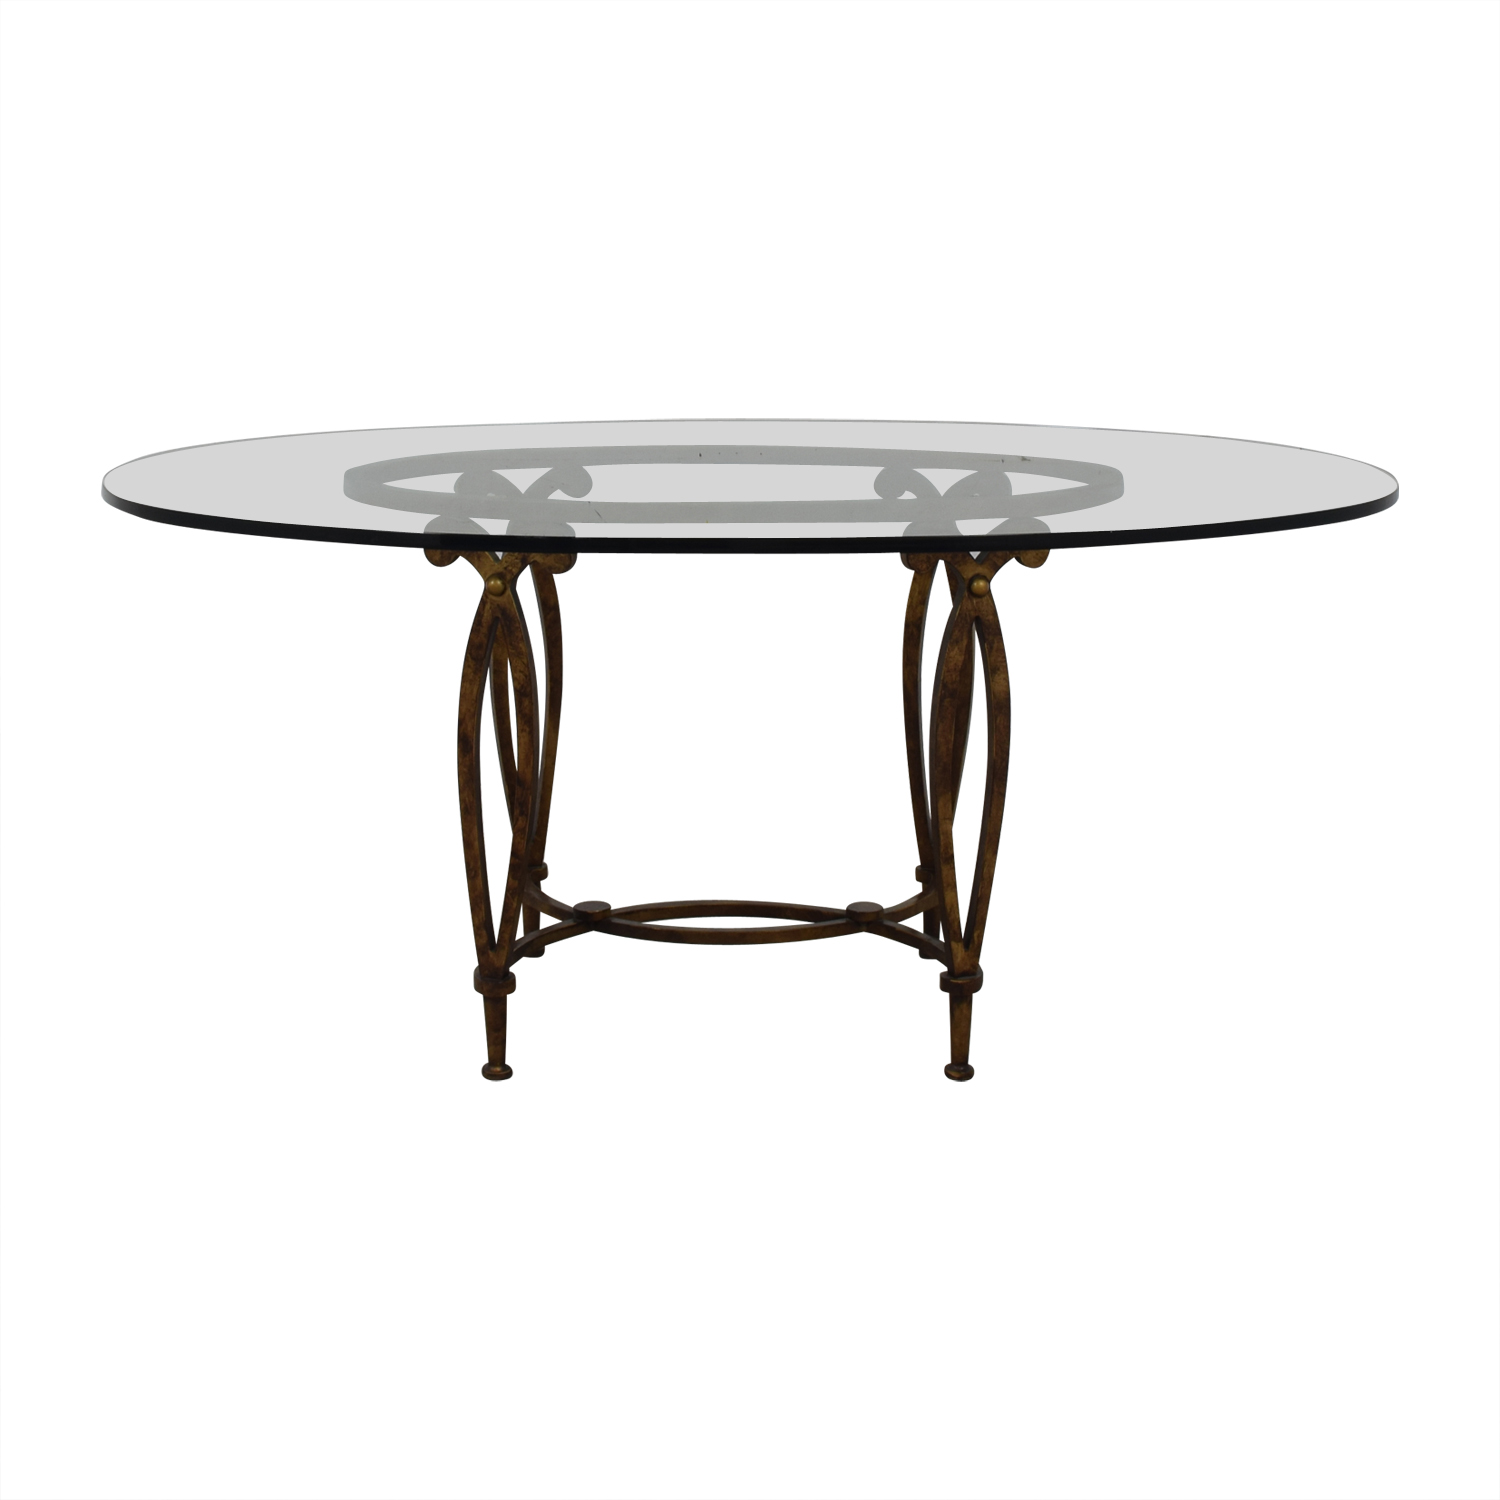 Bloomingdale's Bloomingdale's Glass Top Dining Room Table second hand